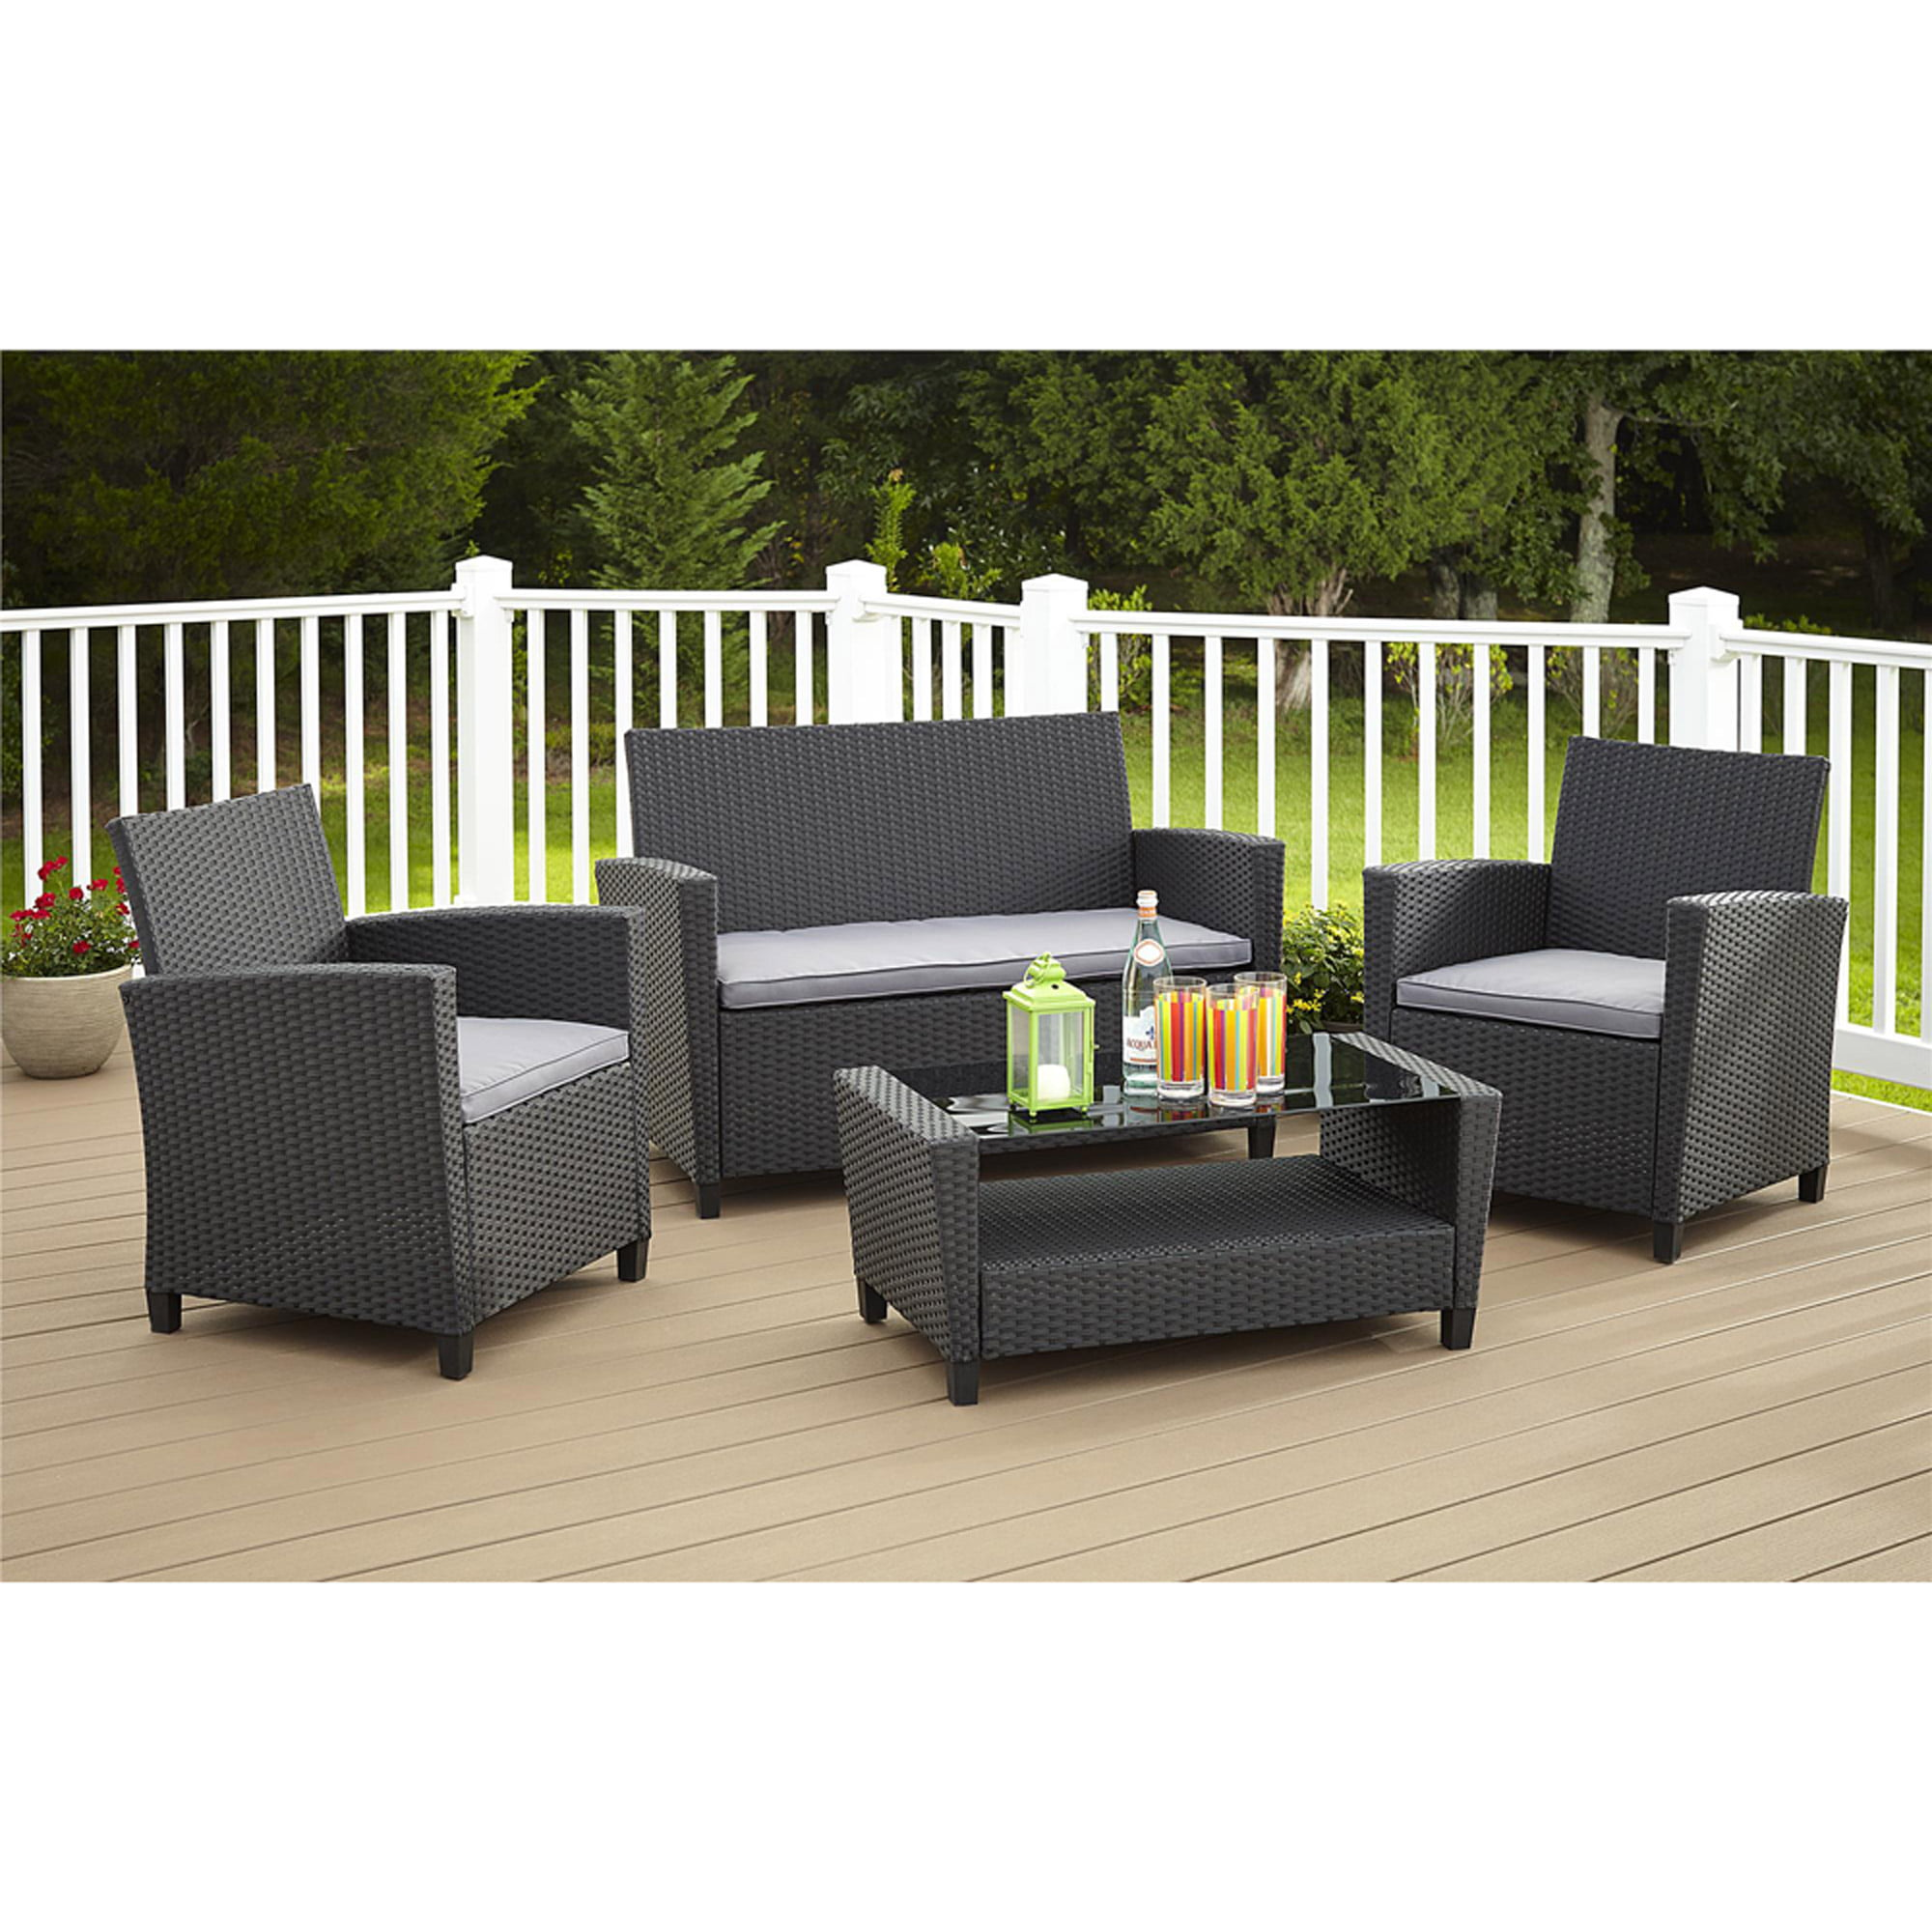 cosco outdoor malmo piece resin wicker patio conversation set  - cosco outdoor malmo piece resin wicker patio conversation set walmartcom